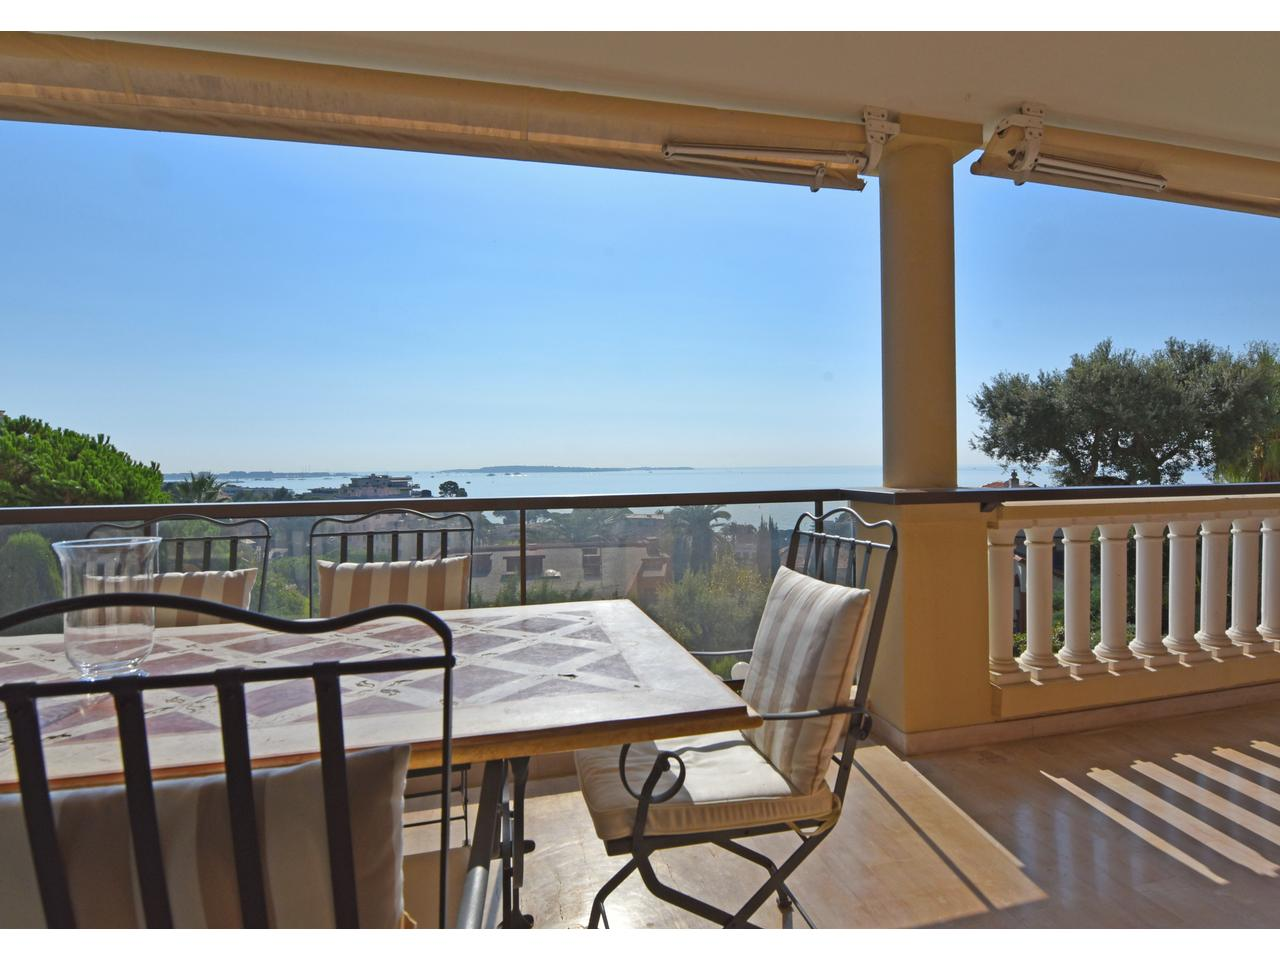 Cannes Appartement 4 pieces vue mer luxe a vendre